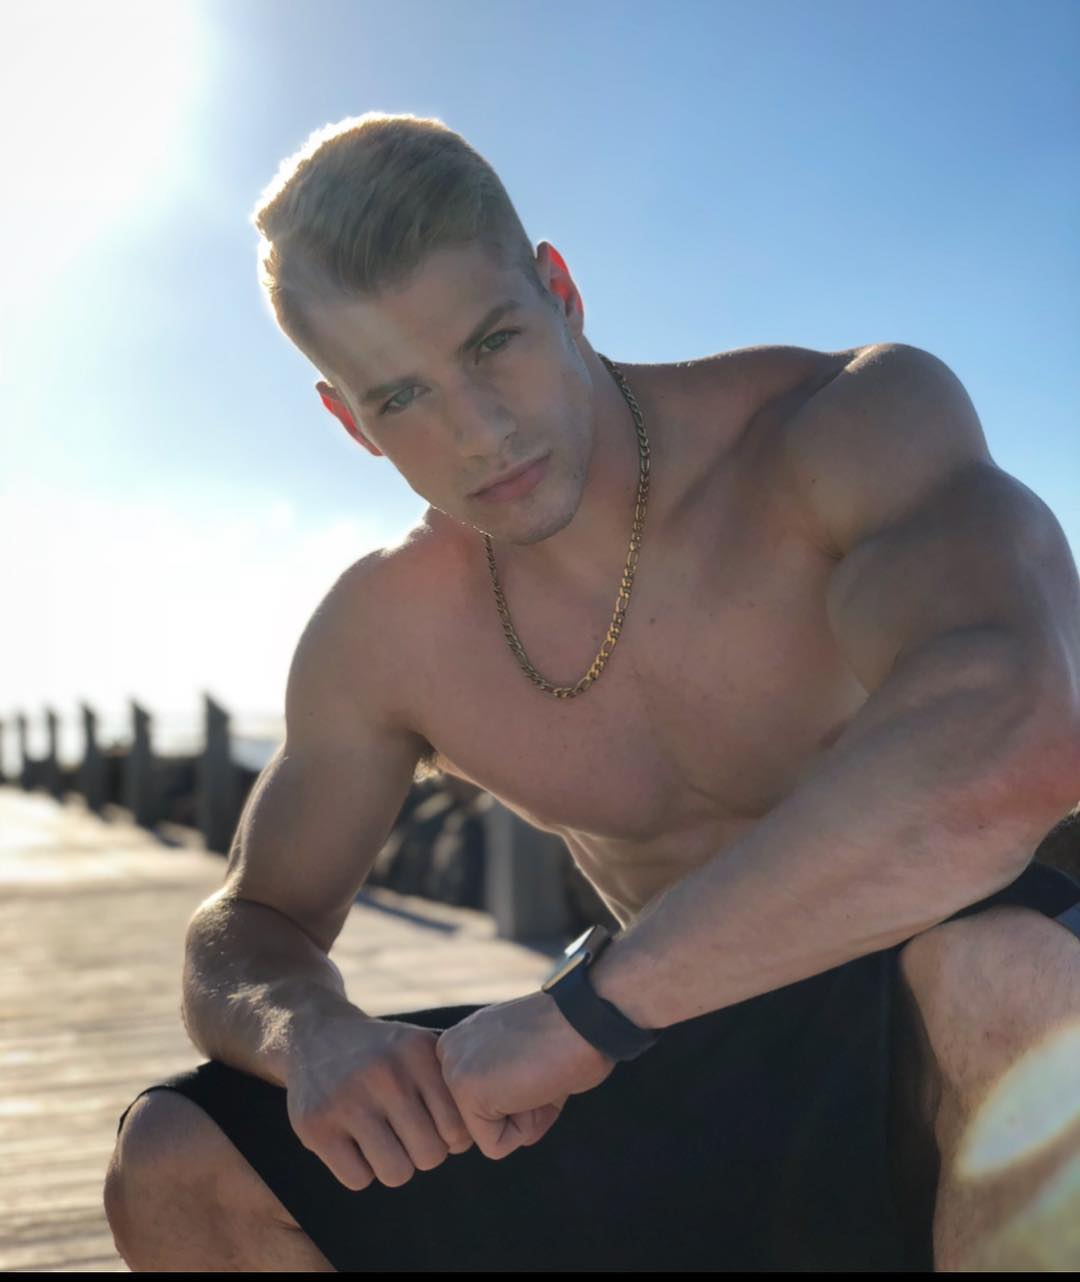 sexy-strong-young-hunk-dominant-blond-shirtless-bad-boy